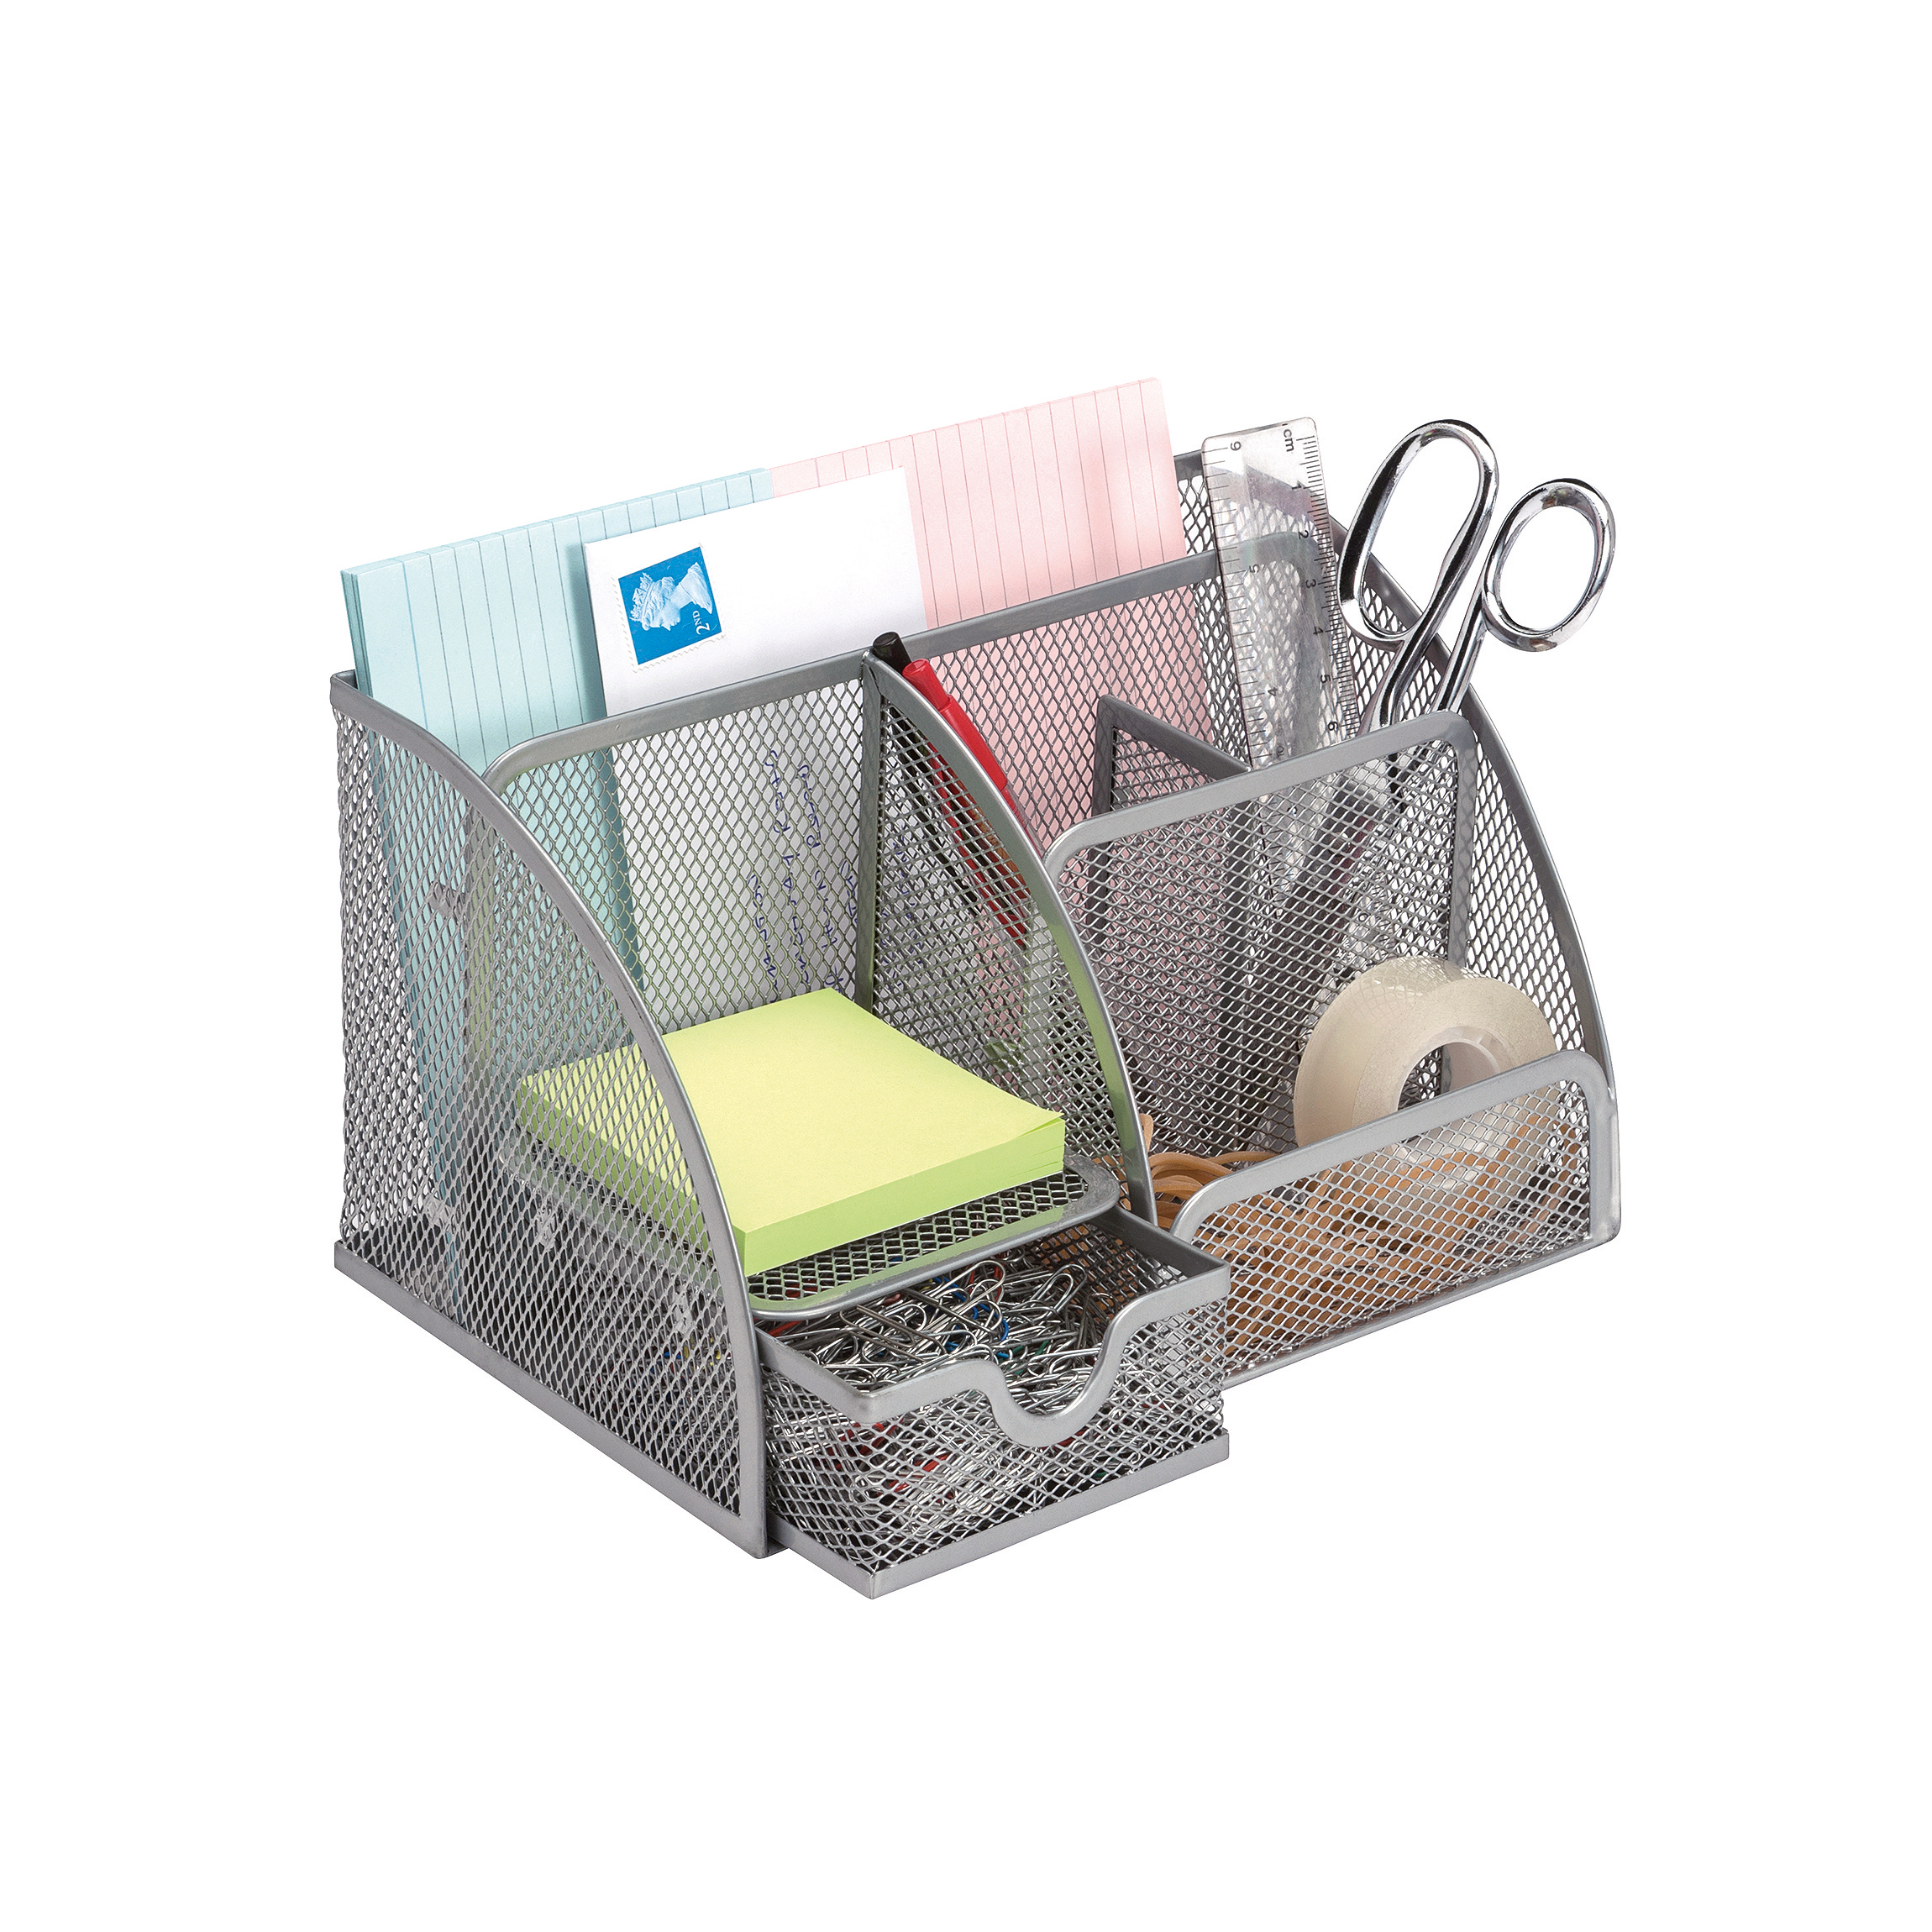 5 Star Office Desk Organiser Mesh Scratch Resistant with Non Marking Rubber Pads Silver